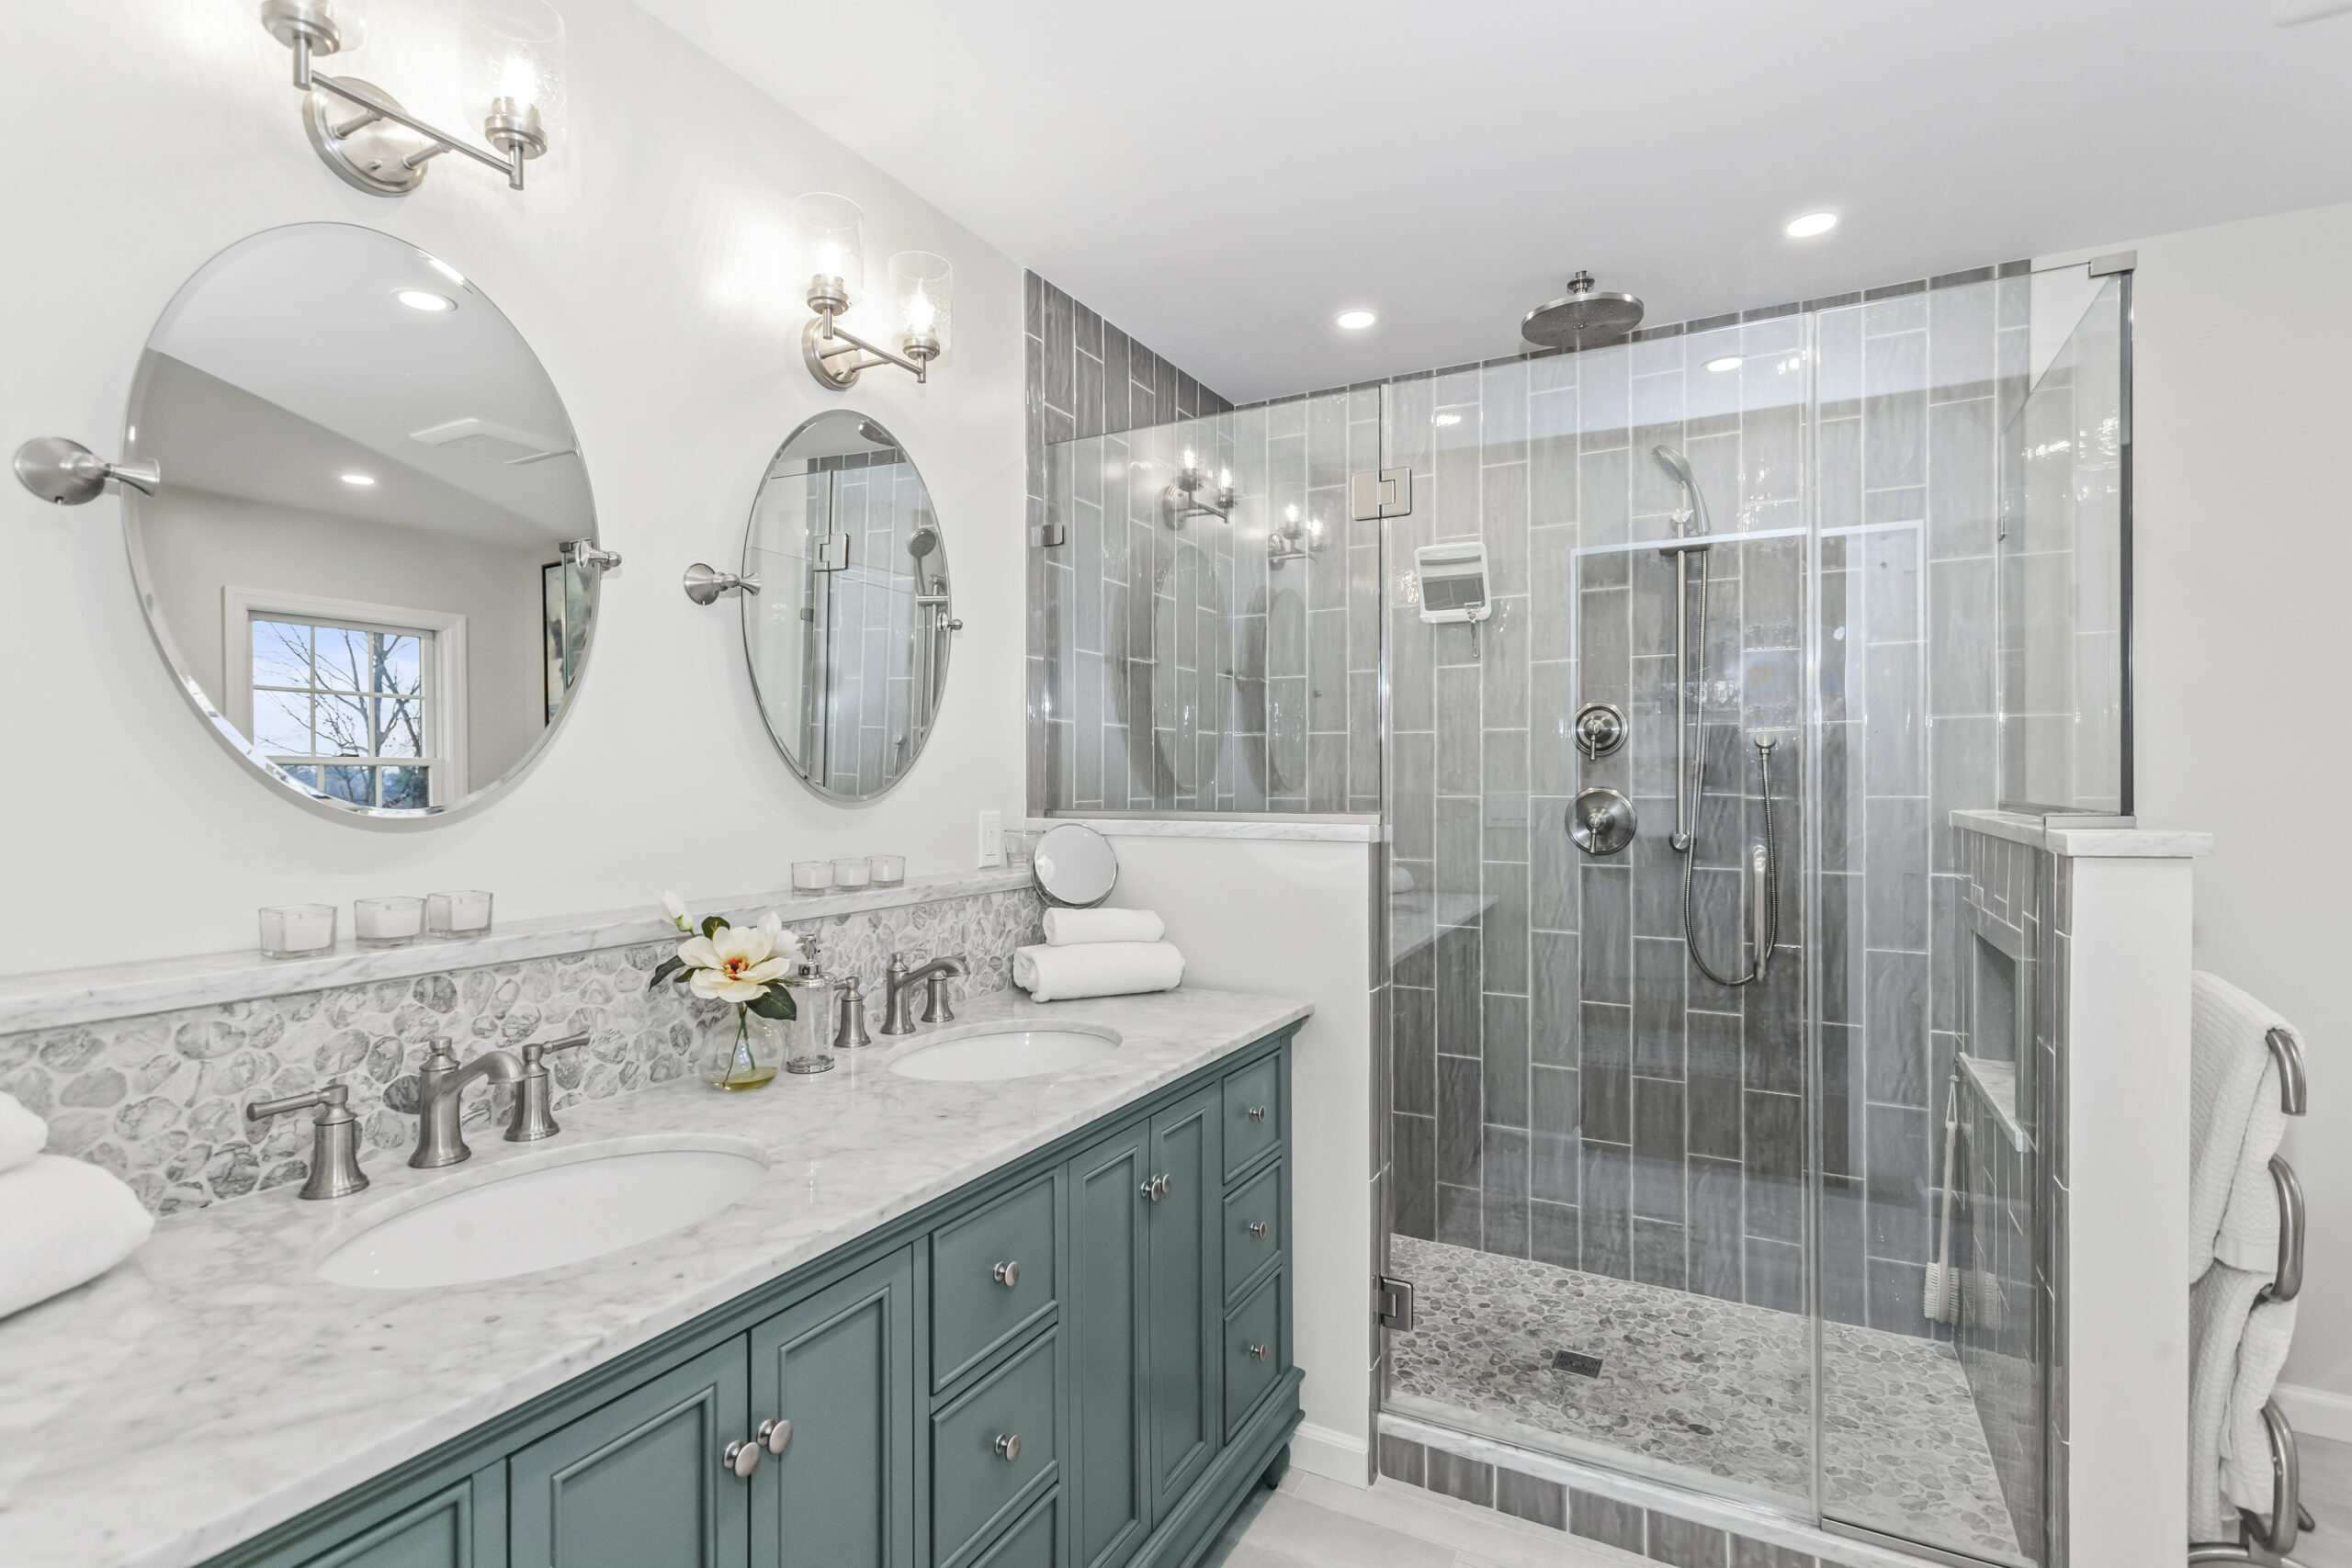 renovated bathroom in a new jersey home.